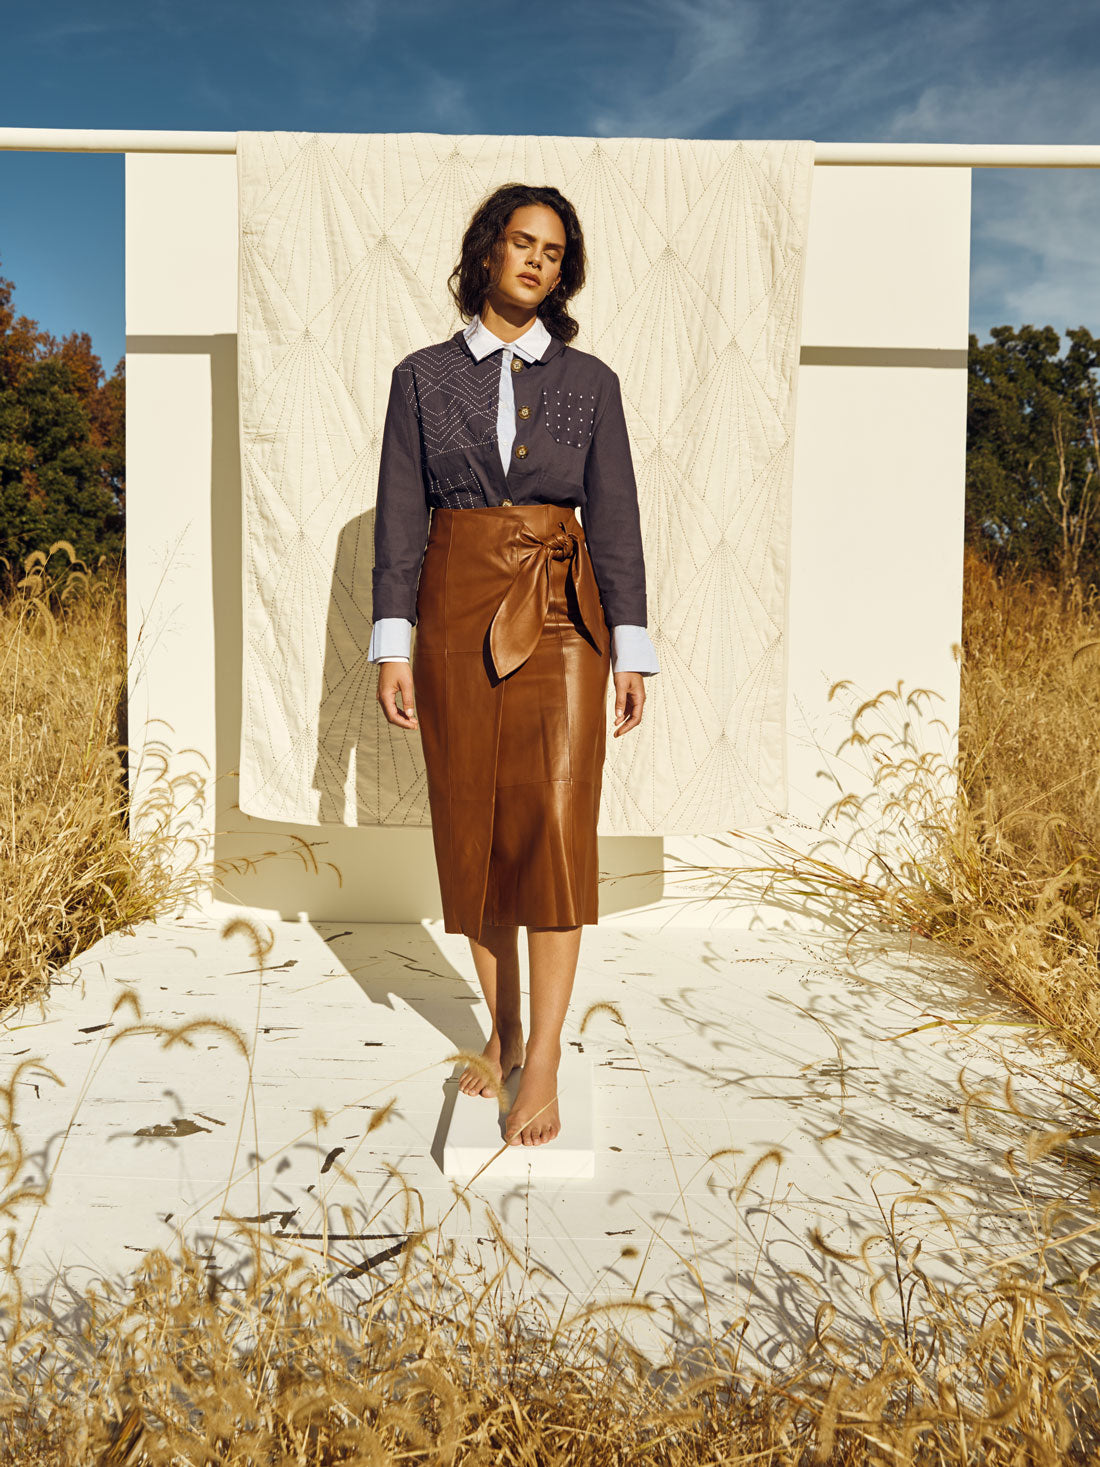 Anchal Navy Chore Jacket with Array Quilt in a Kentucky field, photographer Clay Cook